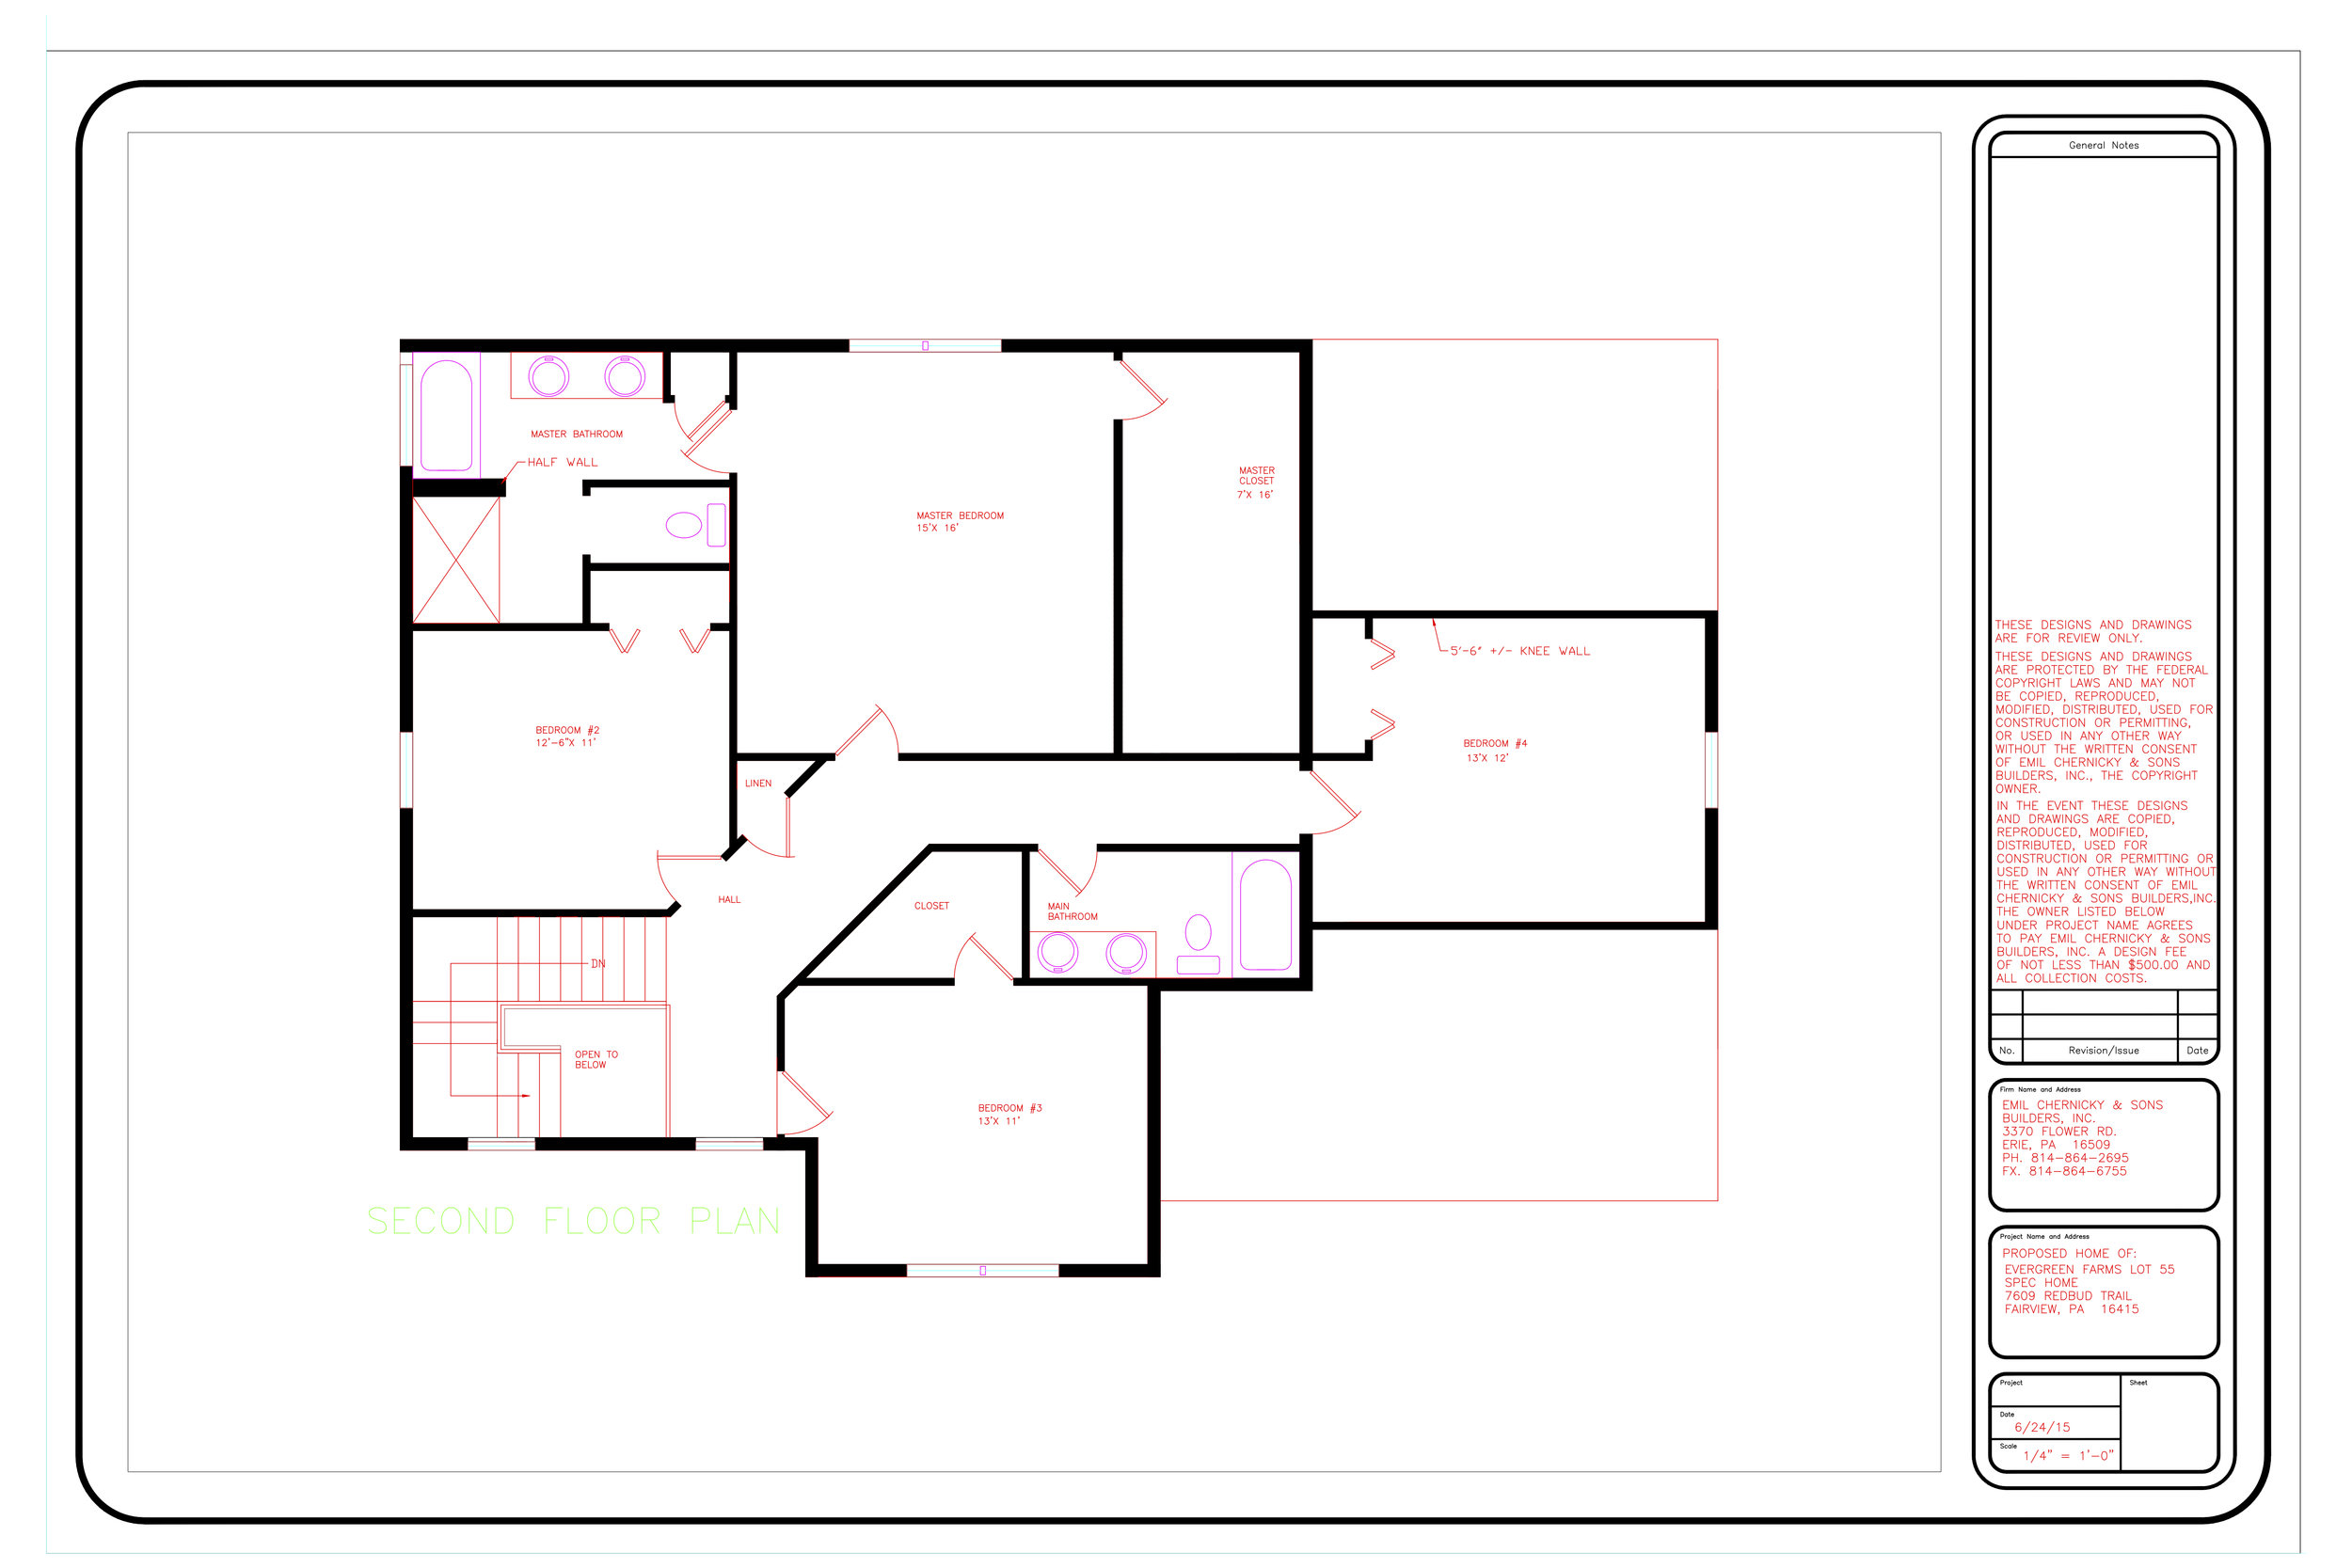 Lot 55 Coppertina V  SECOND FLOOR REVIEW DRAWINGS-Layout1.jpg